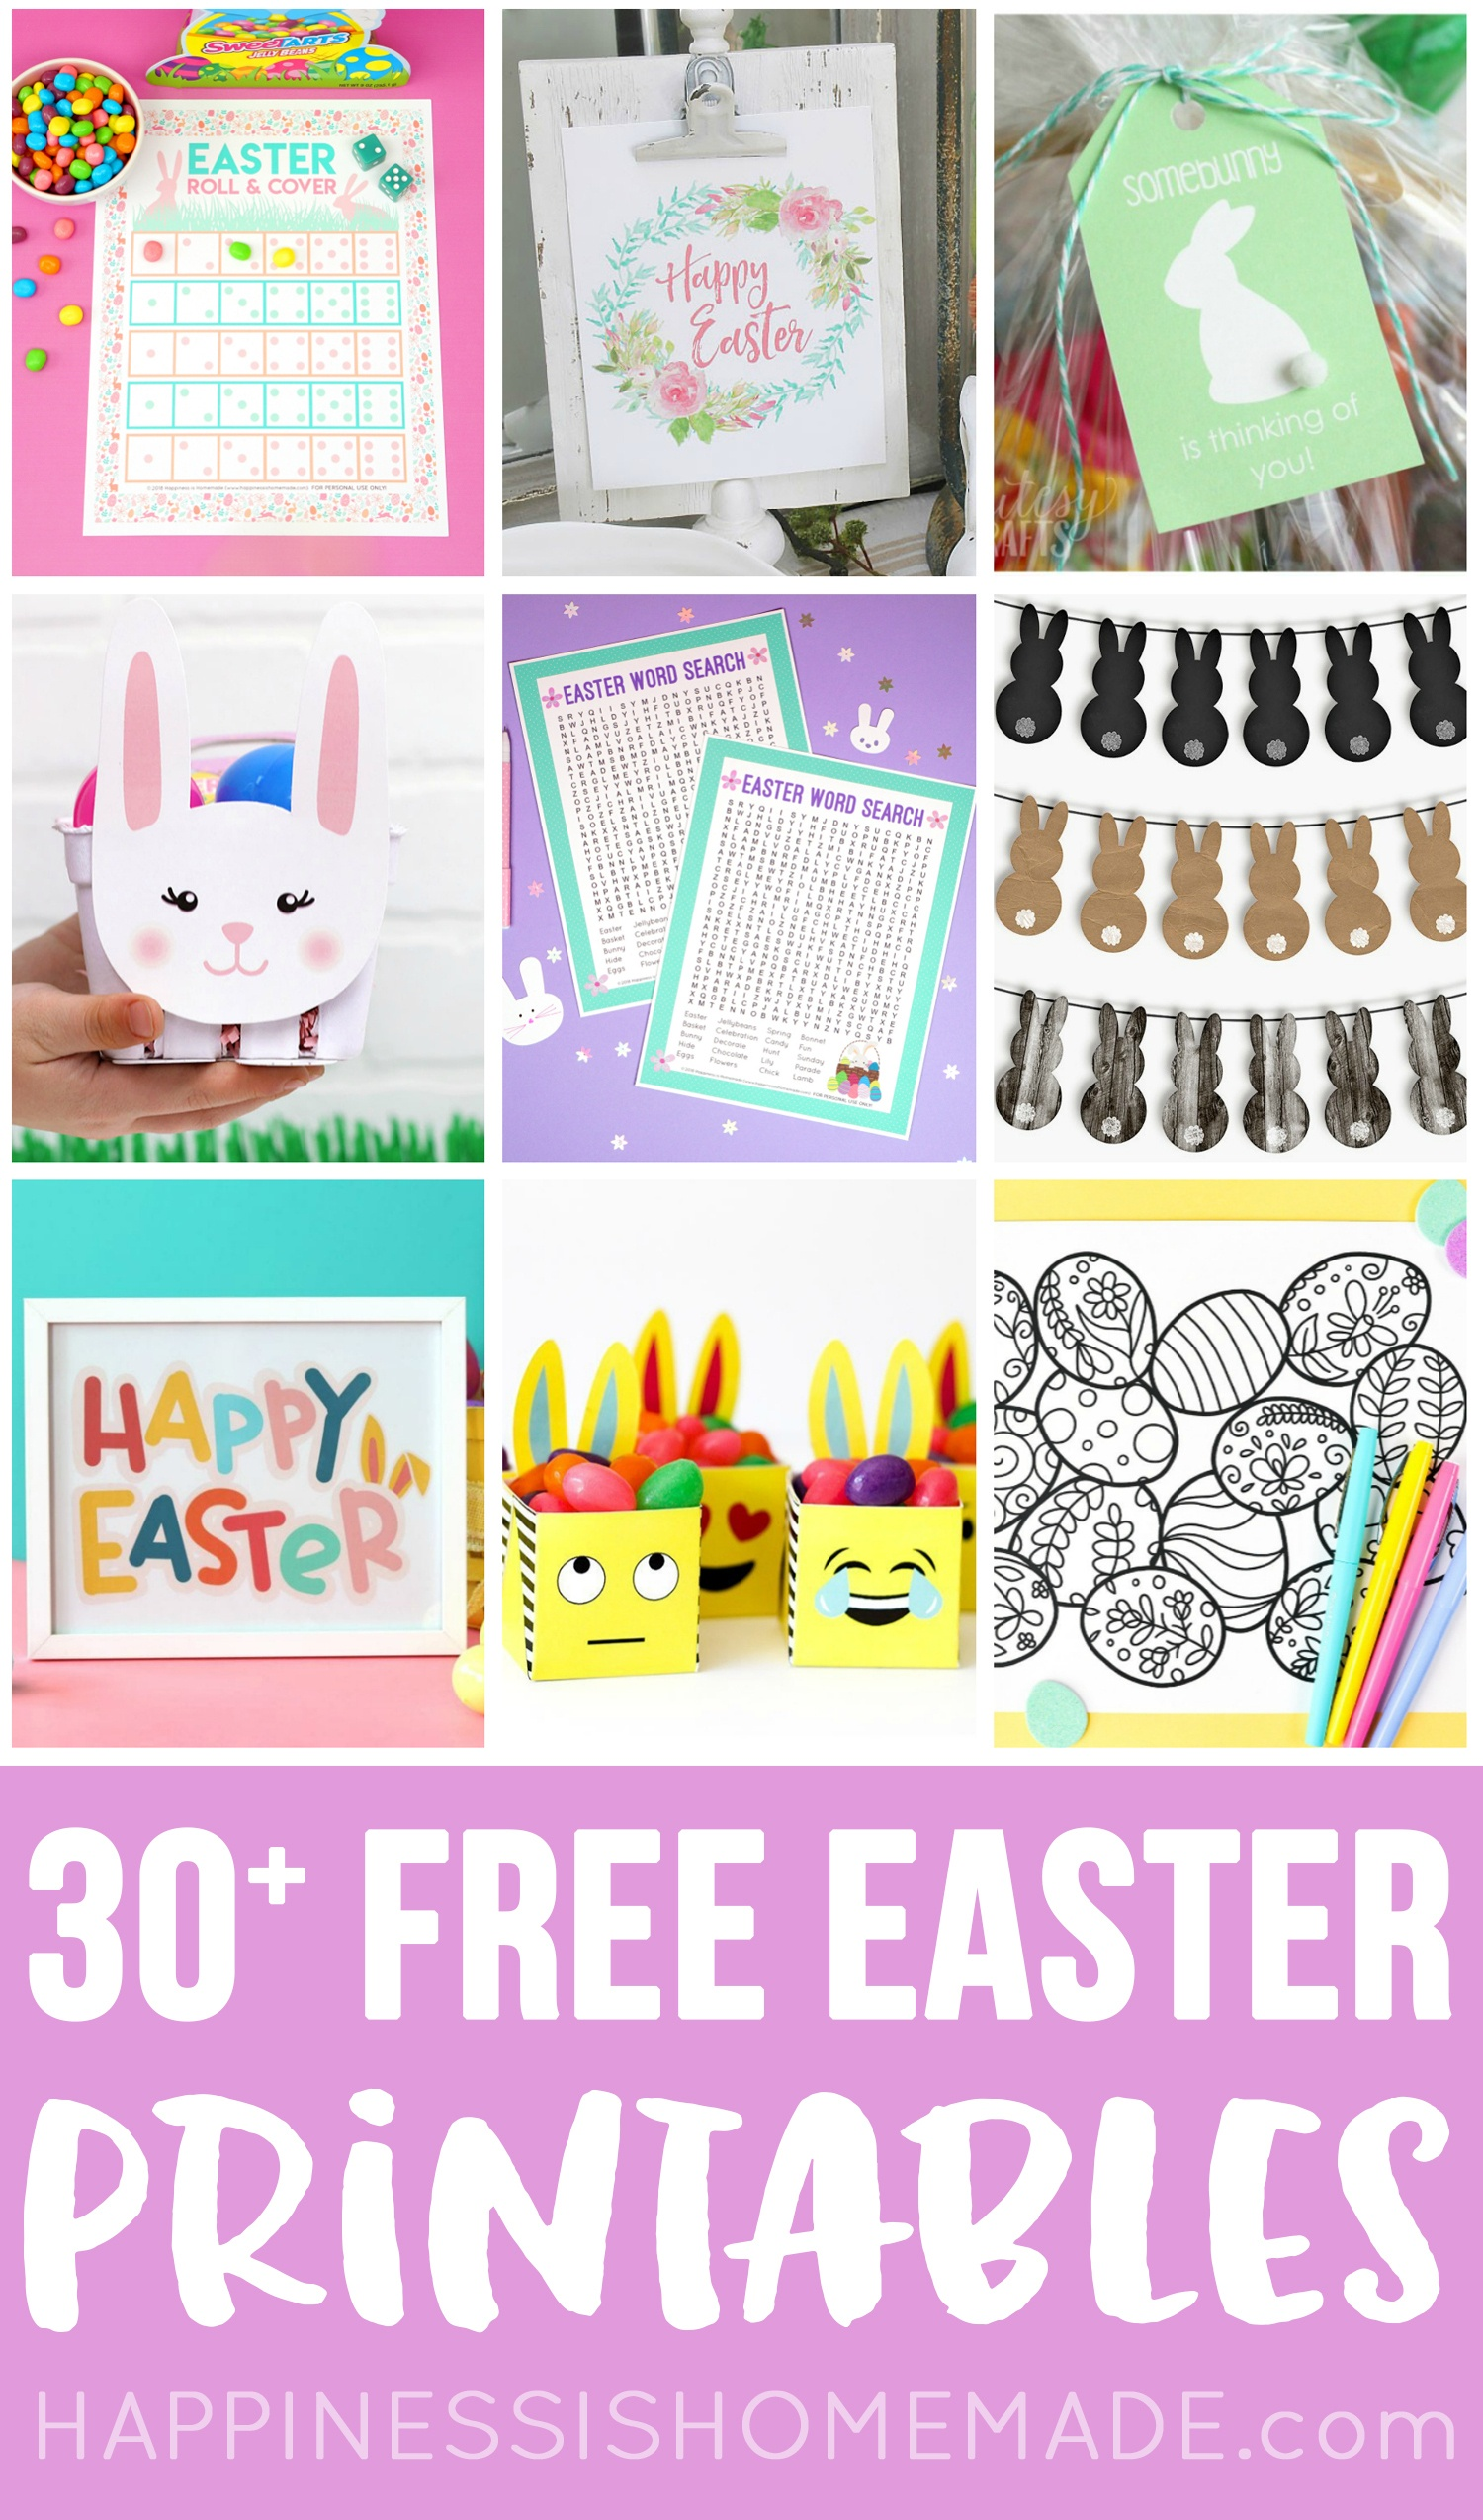 30+ Totally Free Easter Printables - Happiness Is Homemade - Free Printable Easter Decorations